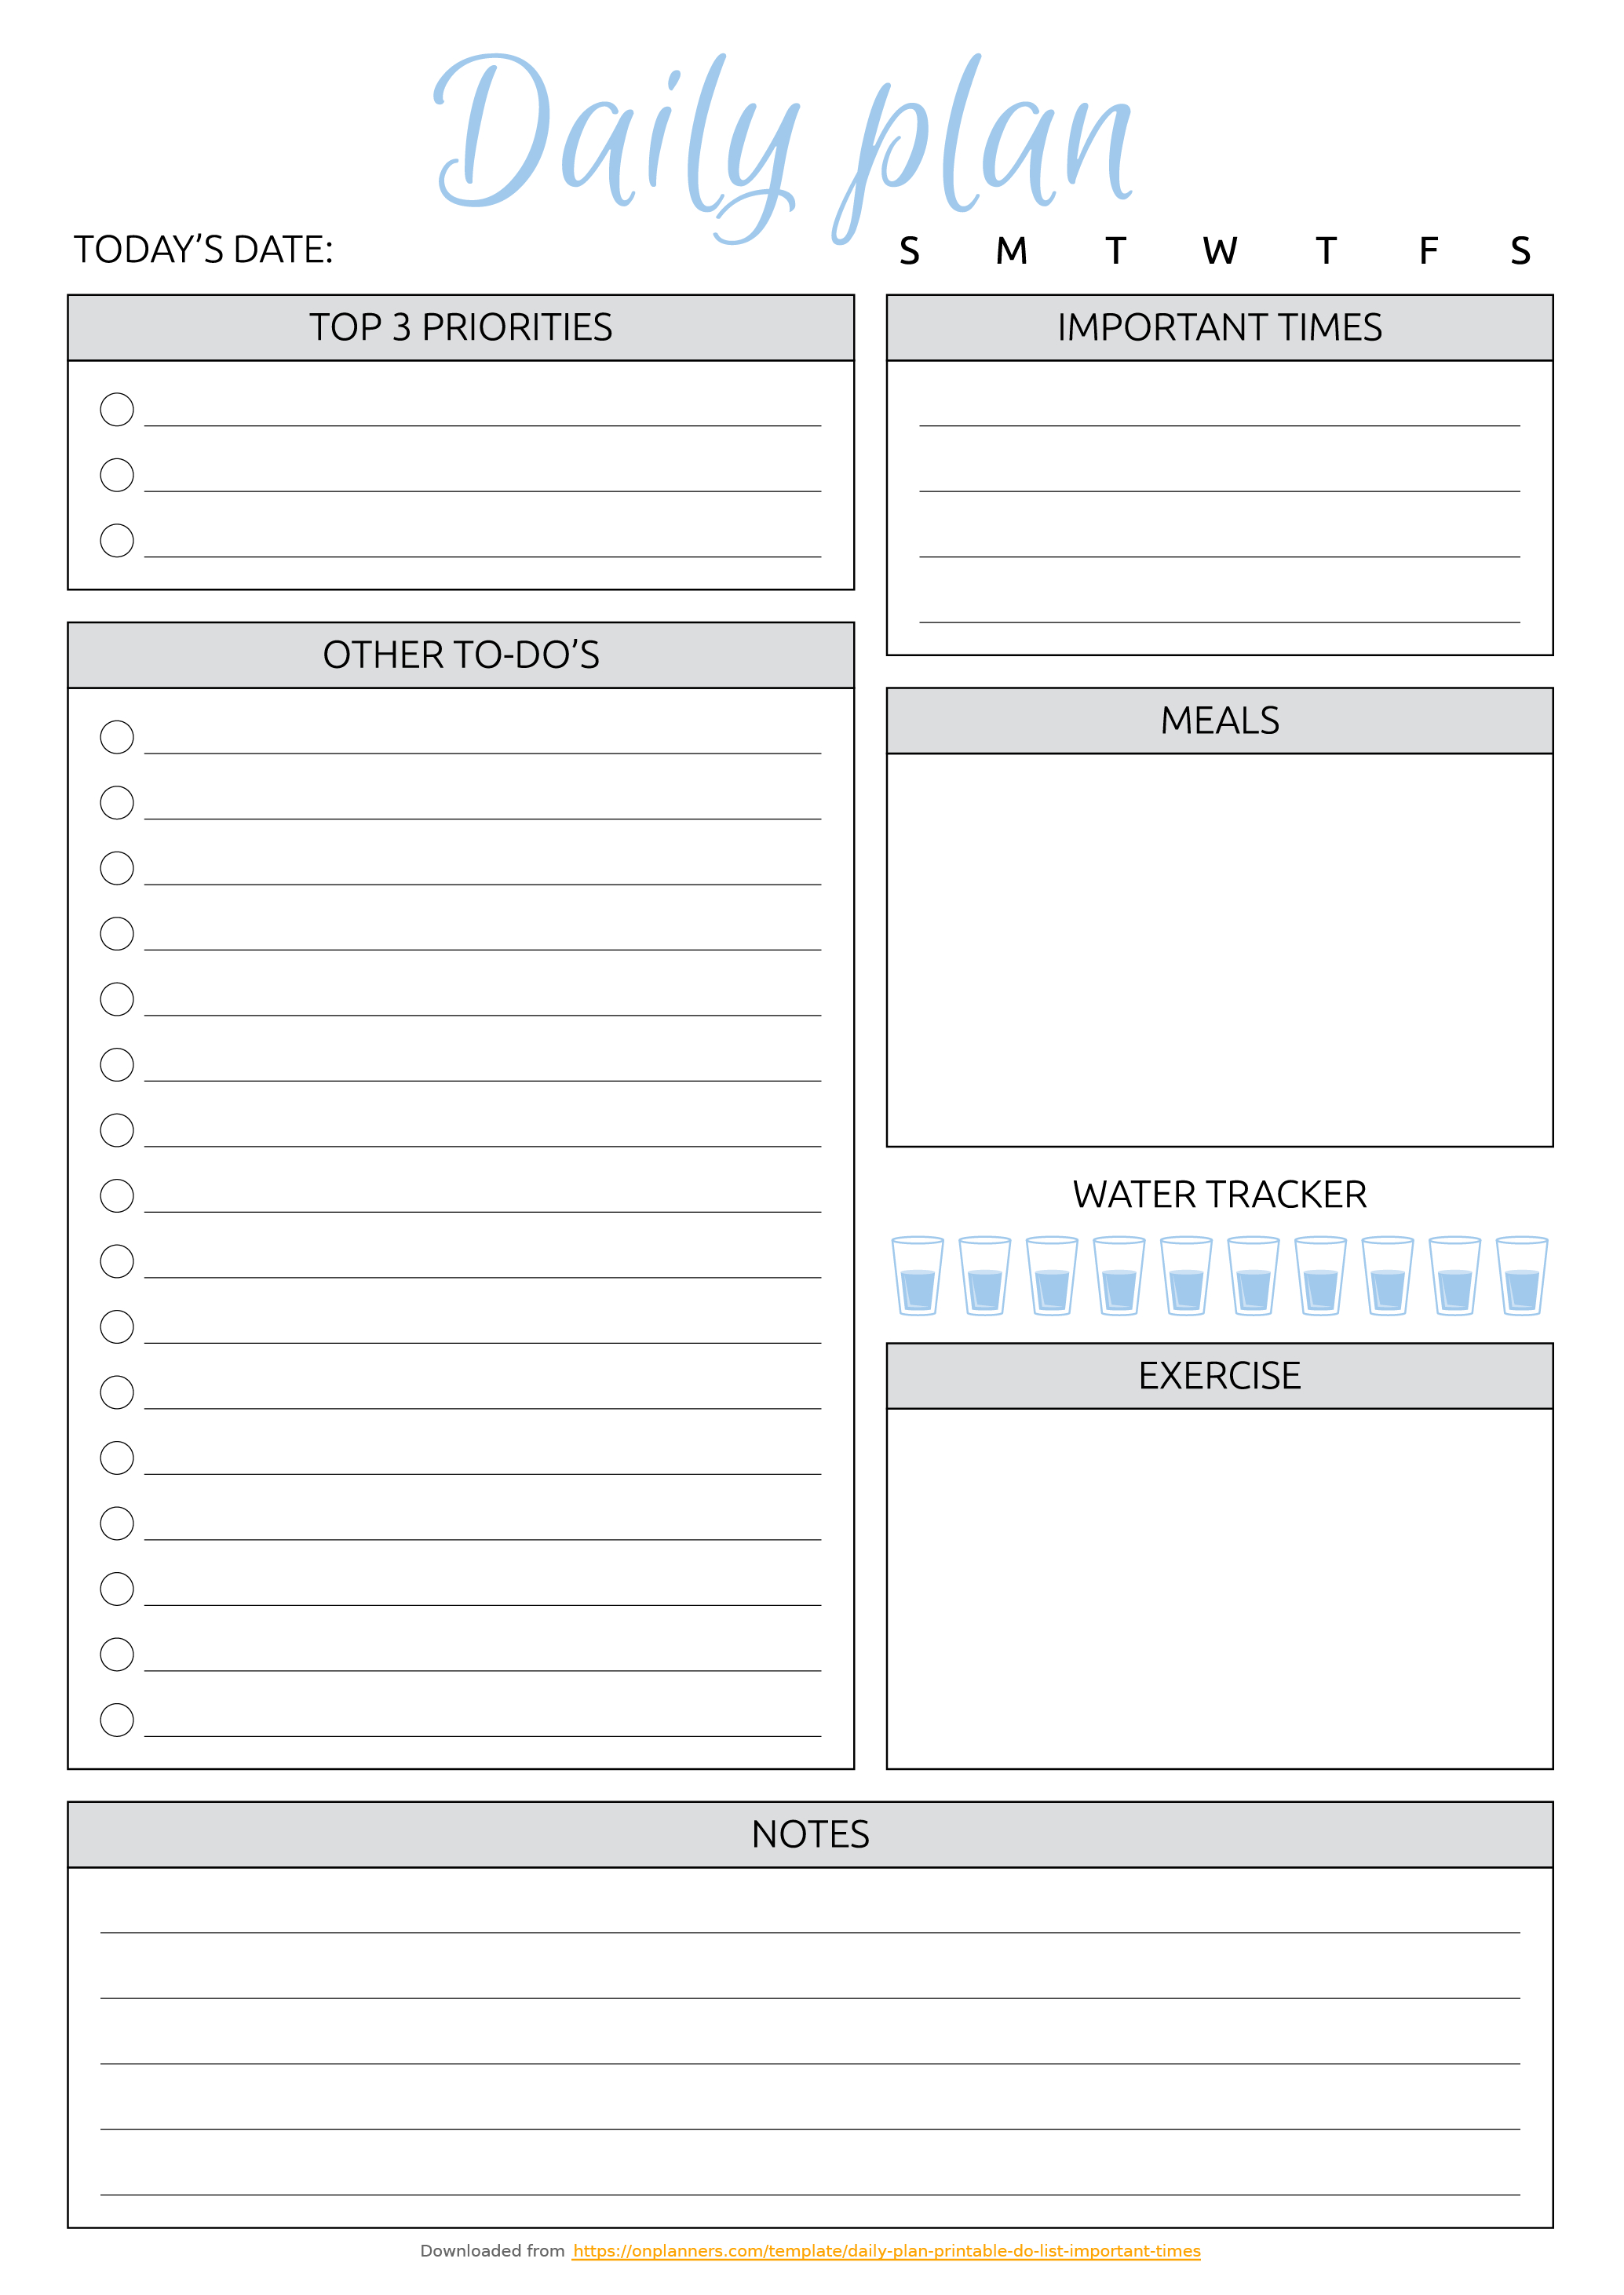 Free Printable Daily Plan With To-Do List & Important Times Pdf Download - Free Printable To Do List Pdf